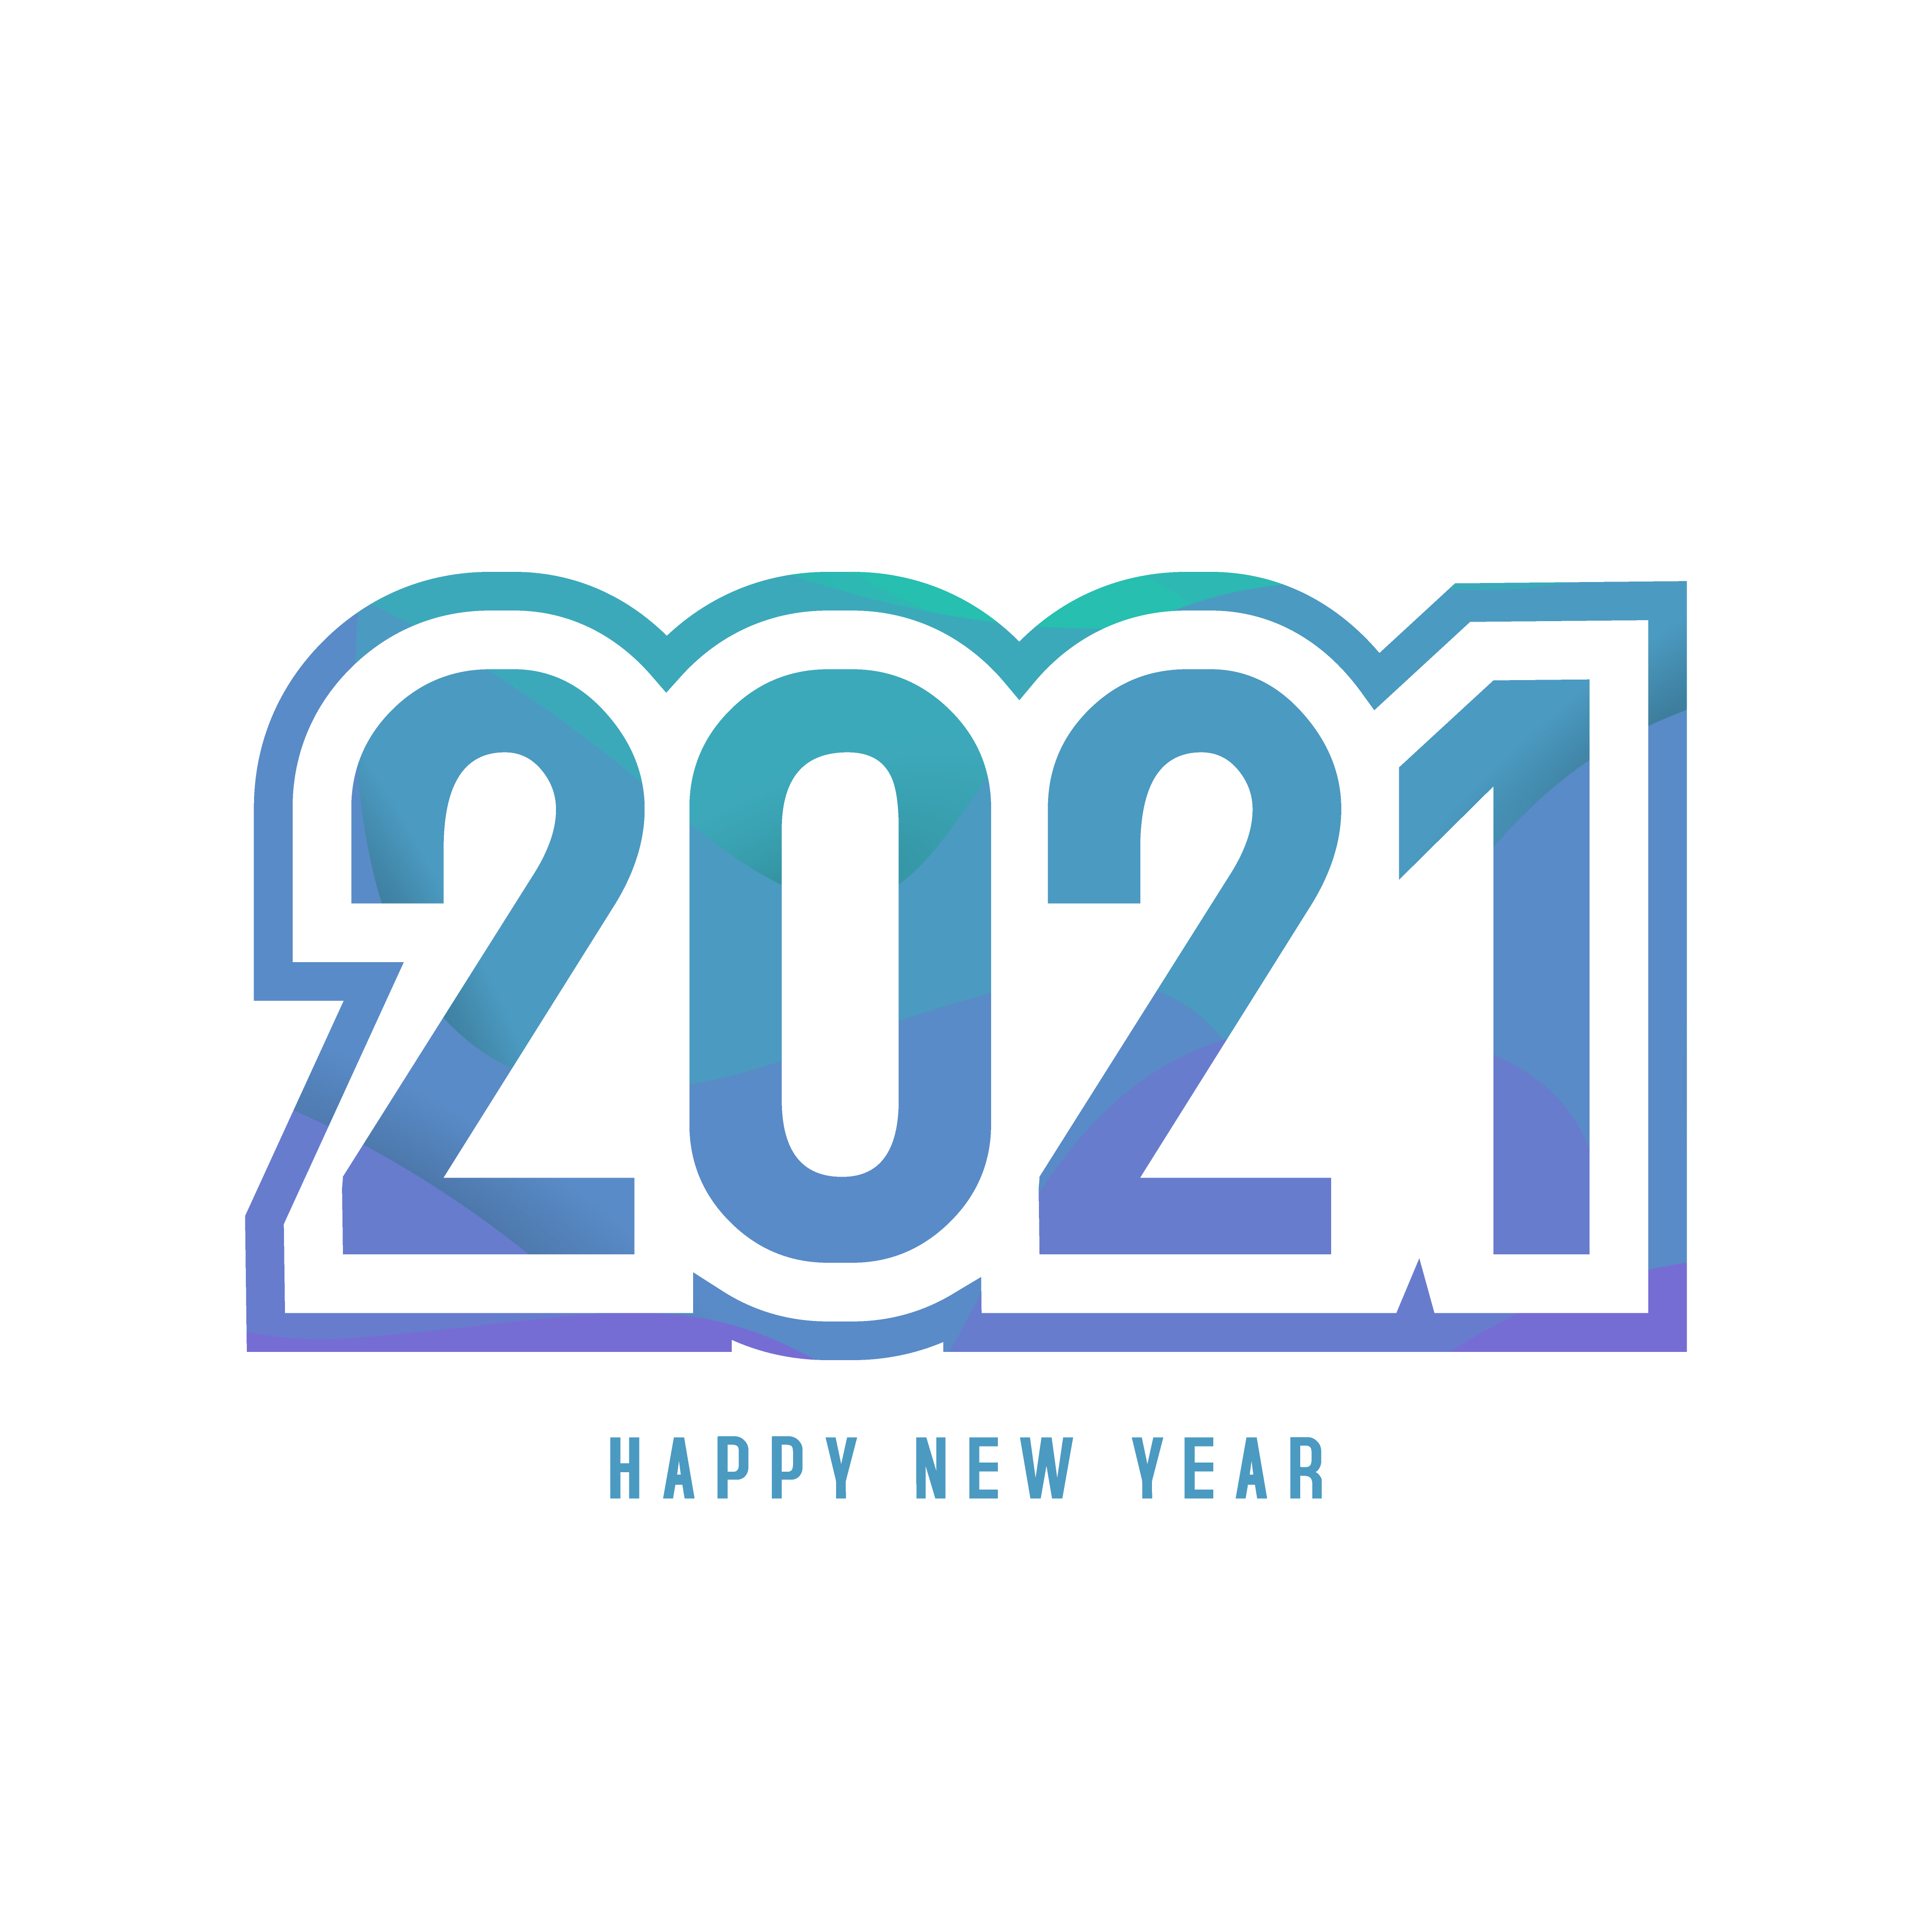 Happy New Year 2021 Greeting Card And Banner Template Download Free Vectors Clipart Graphics Vector Art